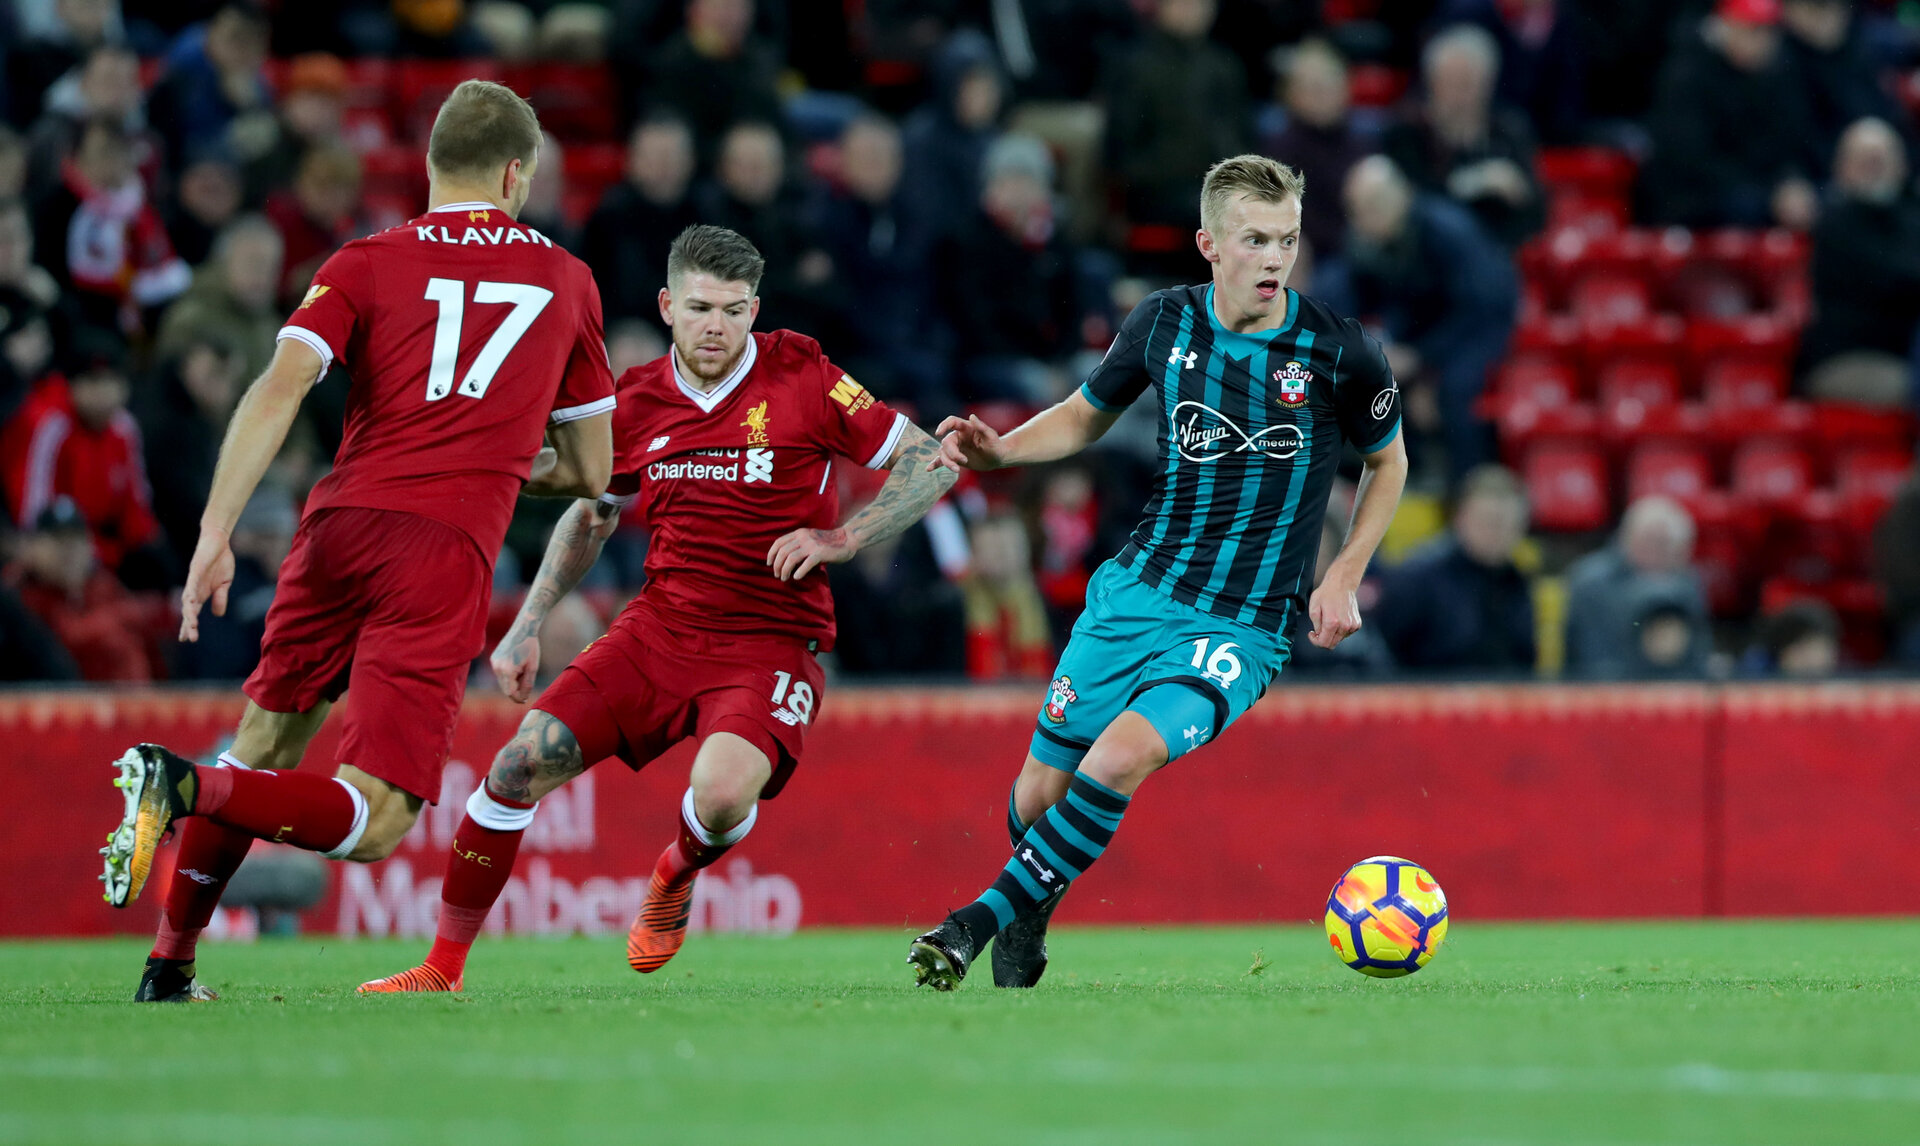 LIVERPOOL, ENGLAND - NOVEMBER 18: Southampton's James Ward-Prowse during the Premier League match between Liverpool and Southampton at Anfield on November 18, 2017 in Liverpool, England. (Photo by Matt Watson/Southampton FC via Getty Images)